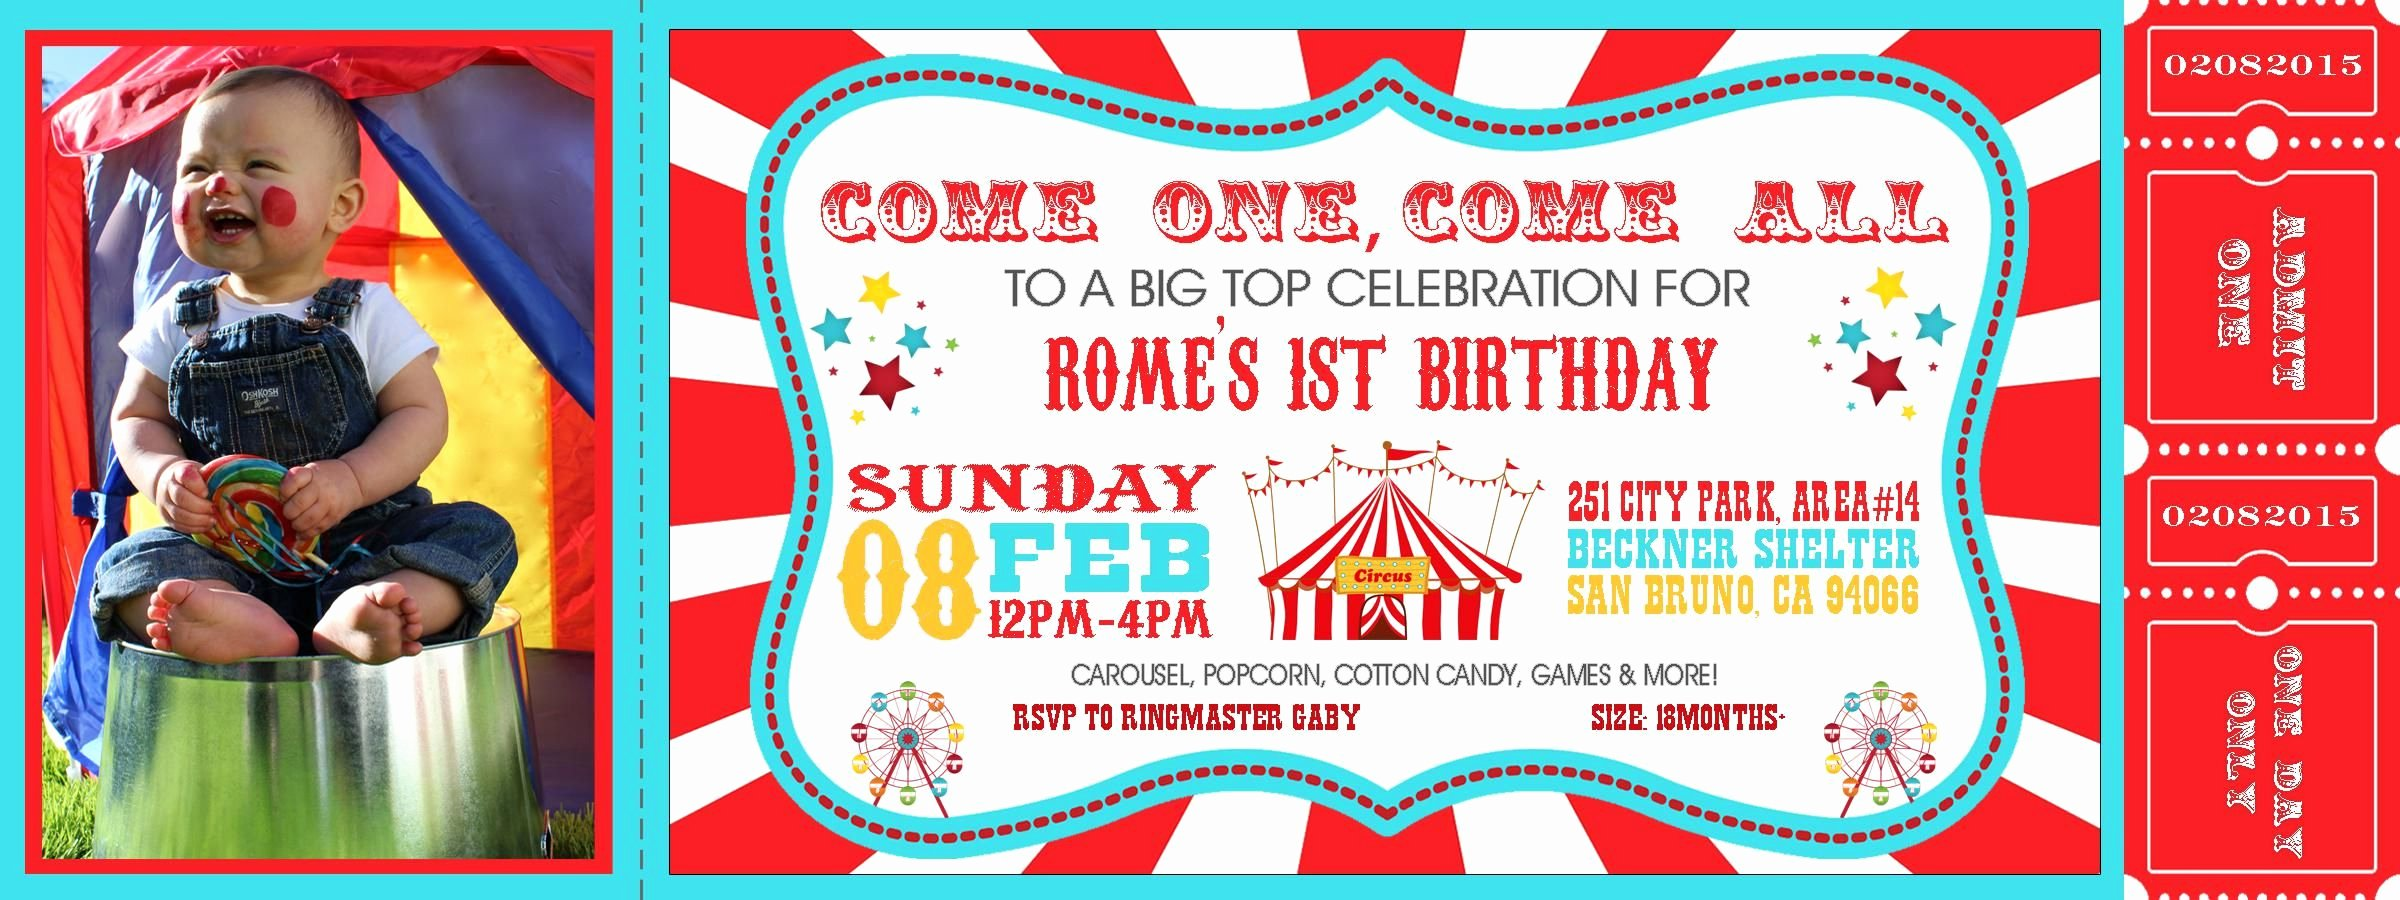 Carnival themed Birthday Invitations Lovely Carnival theme Party Invitations Invitation Card Design Let S Party